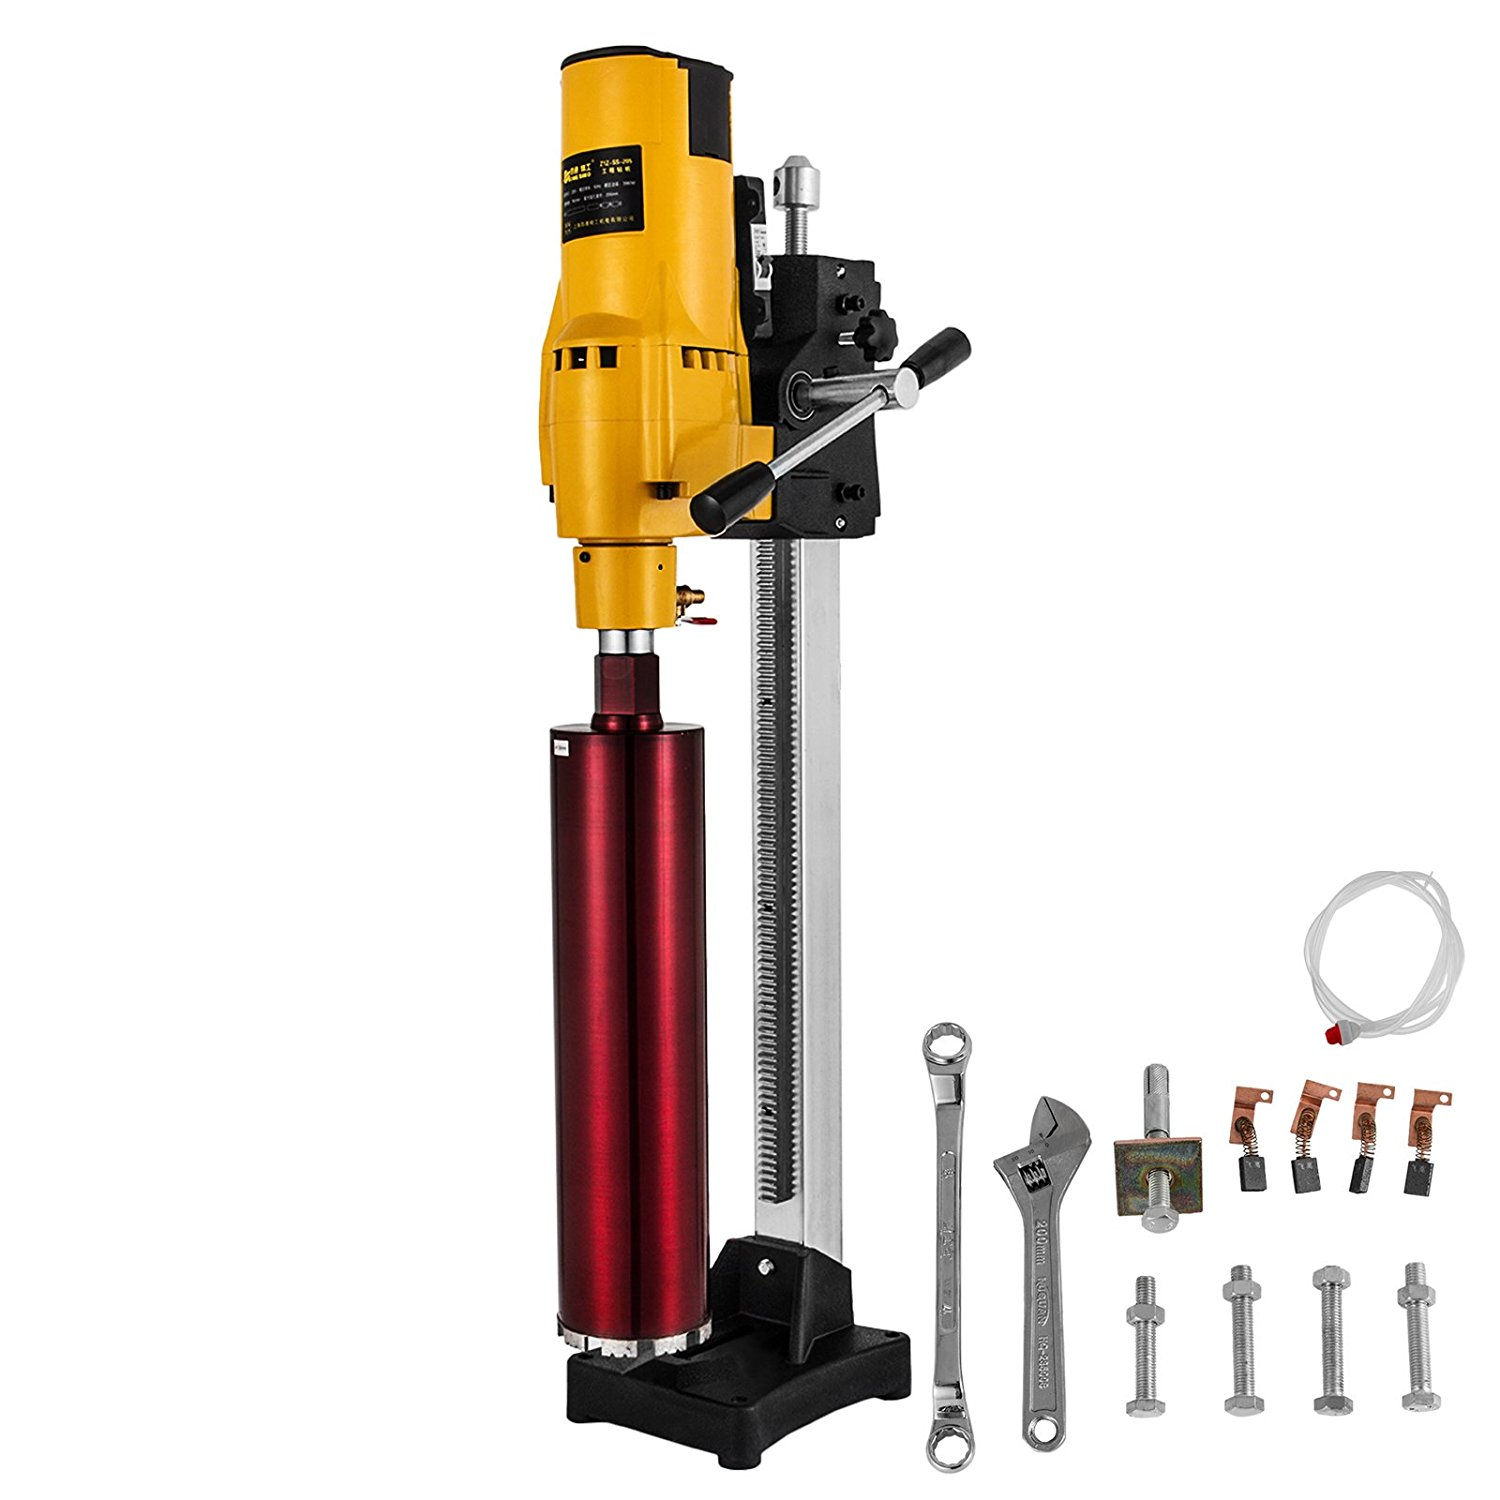 Beast Core Drill /& Rig Accessory Vacuum Kit for Drill Stand COMPACT- Block Lackmond BCR VKITC VALVES /& Rubber